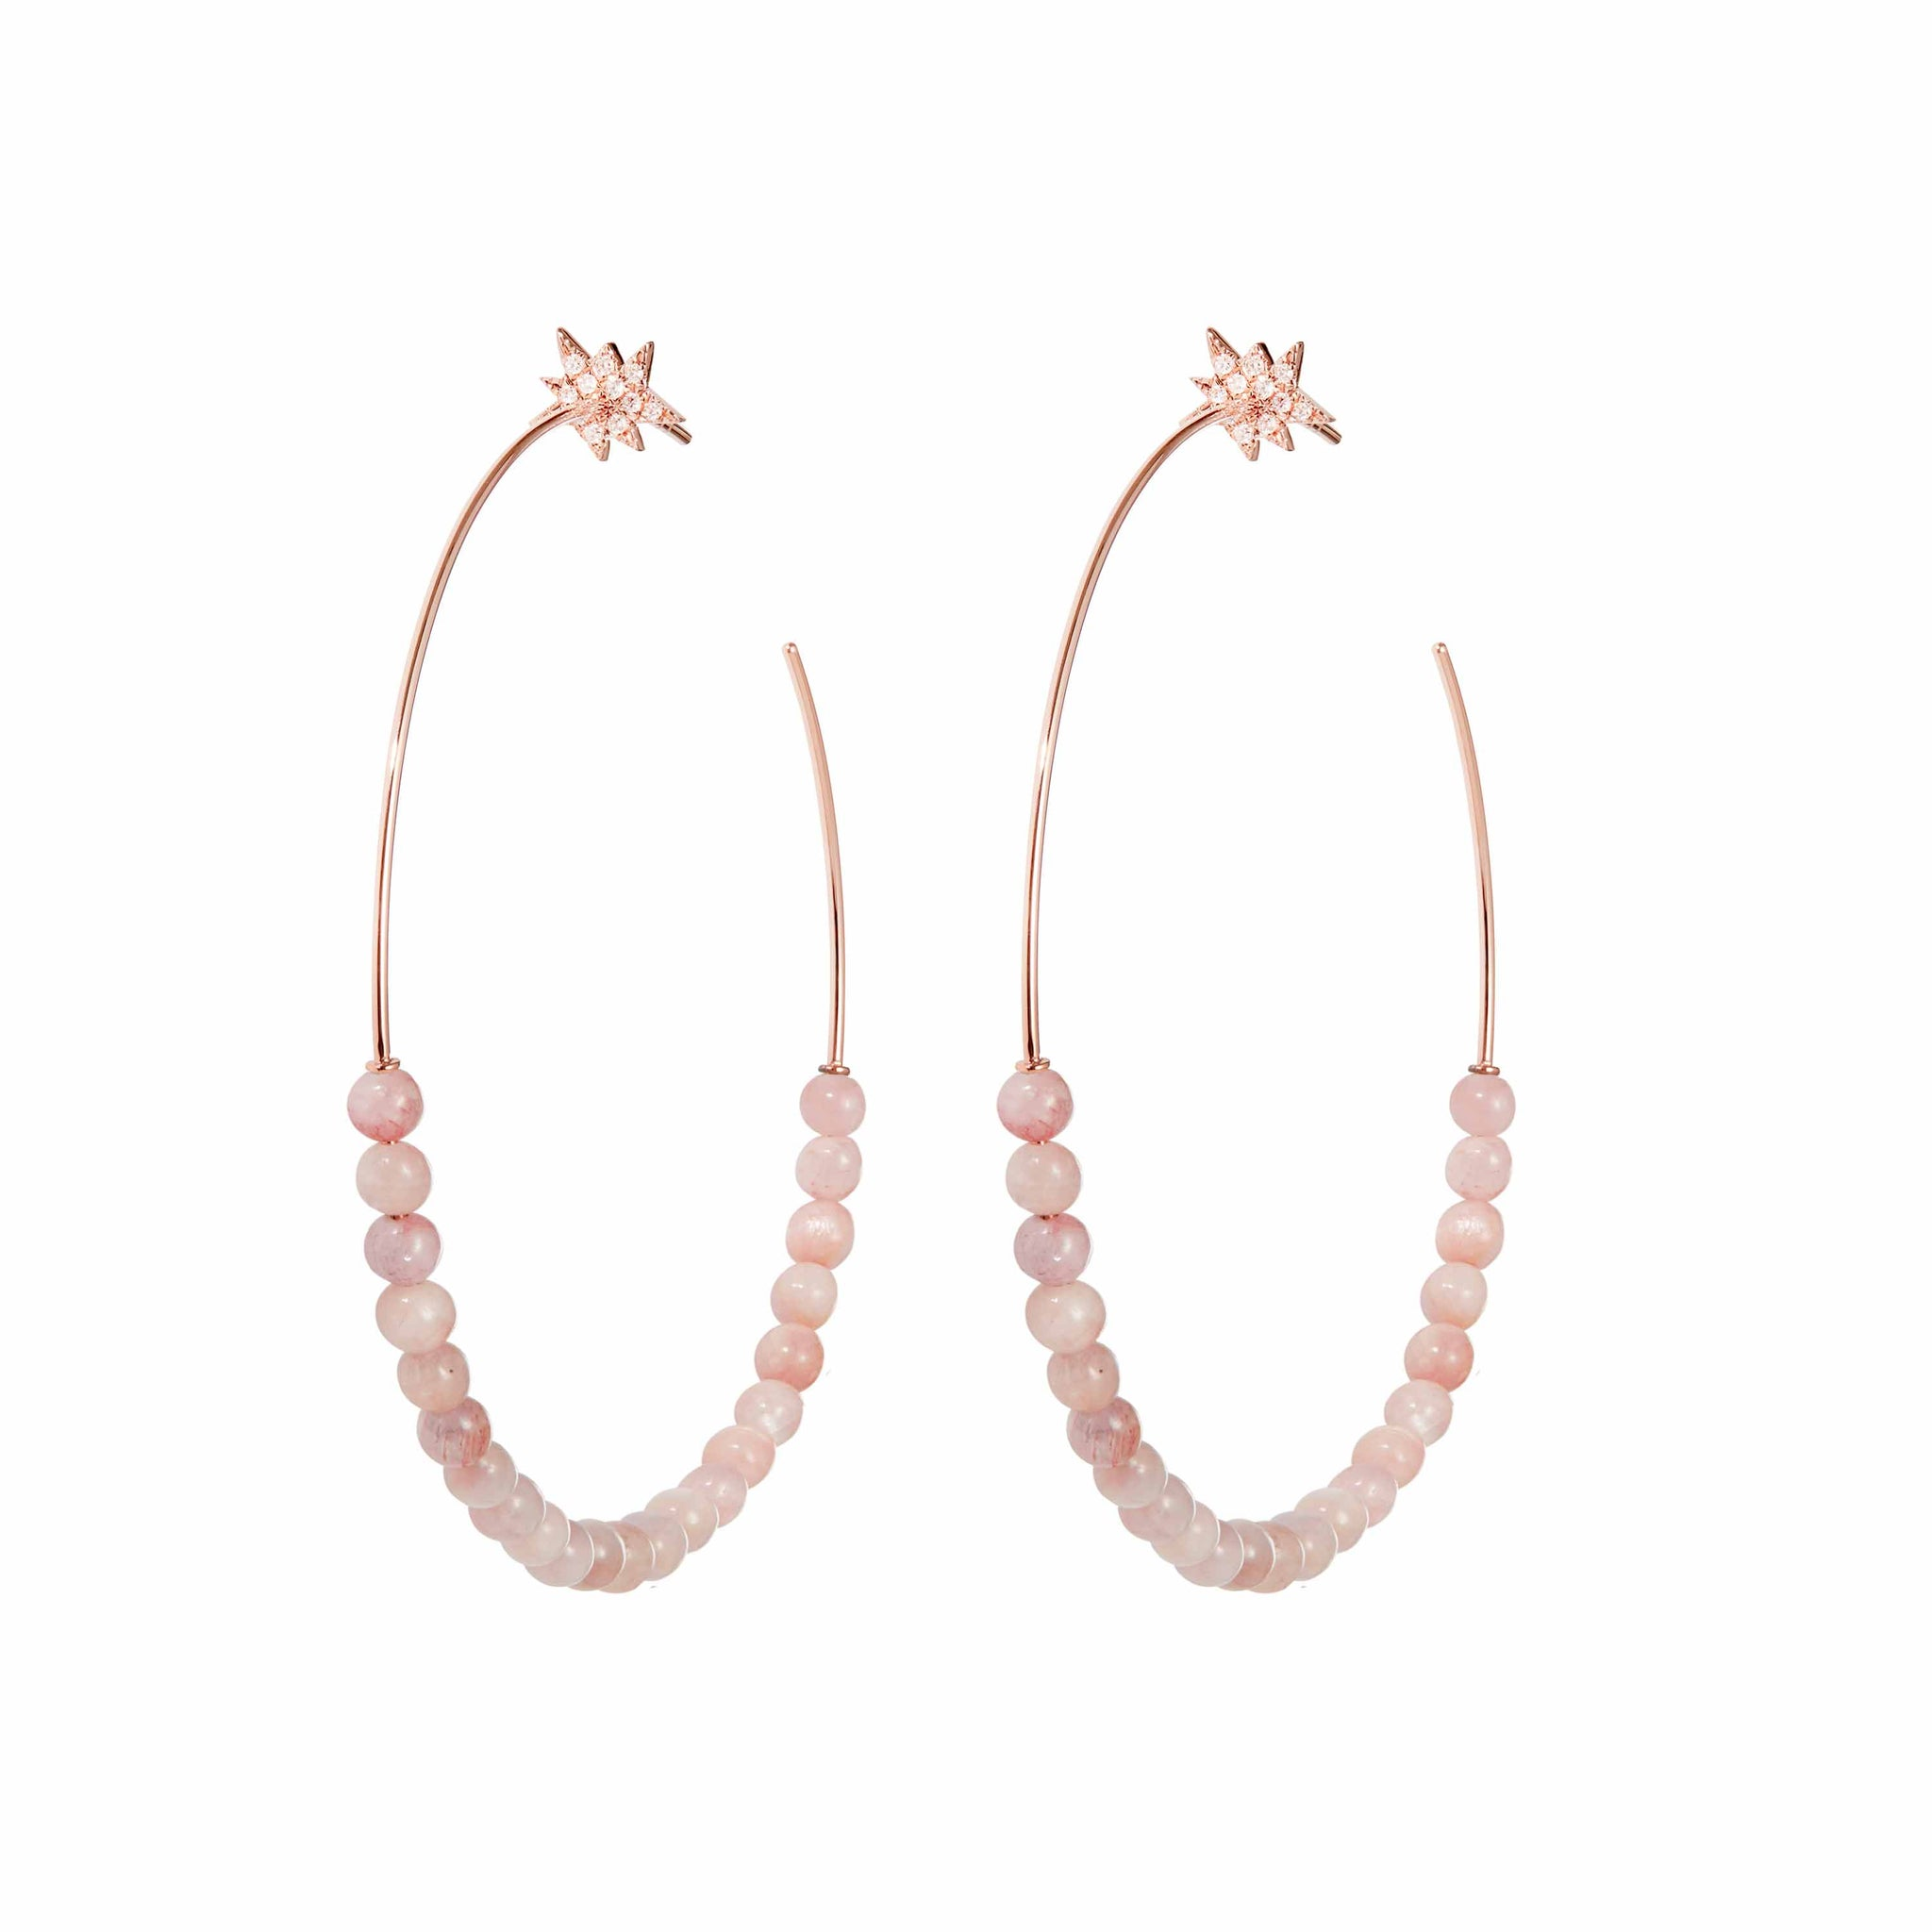 Explosion Kunzite Hoop Earrings